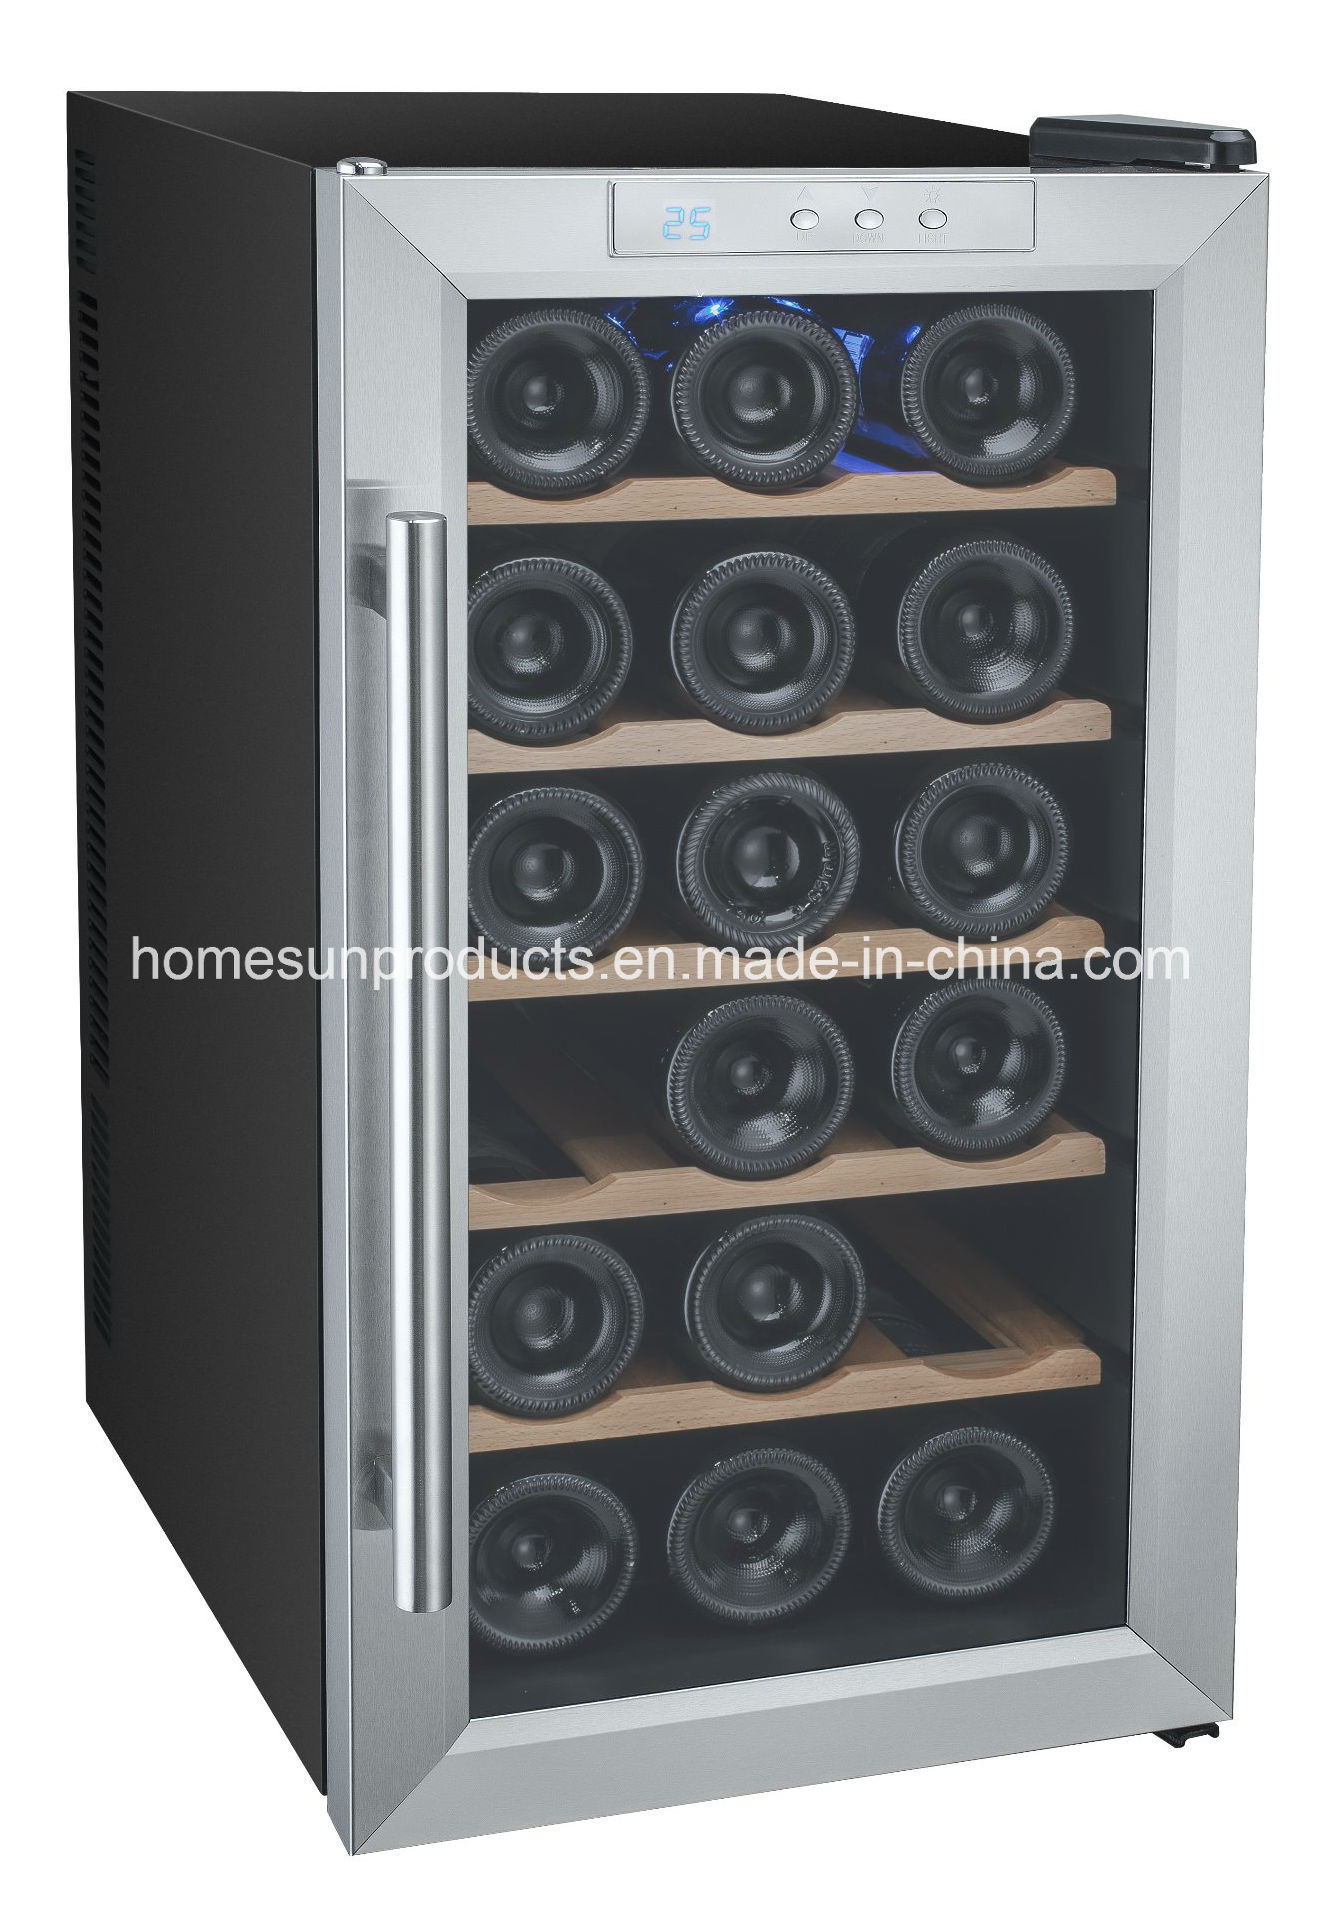 China 18bottles Stainless Steel Glass Door Thermoelectric Wine